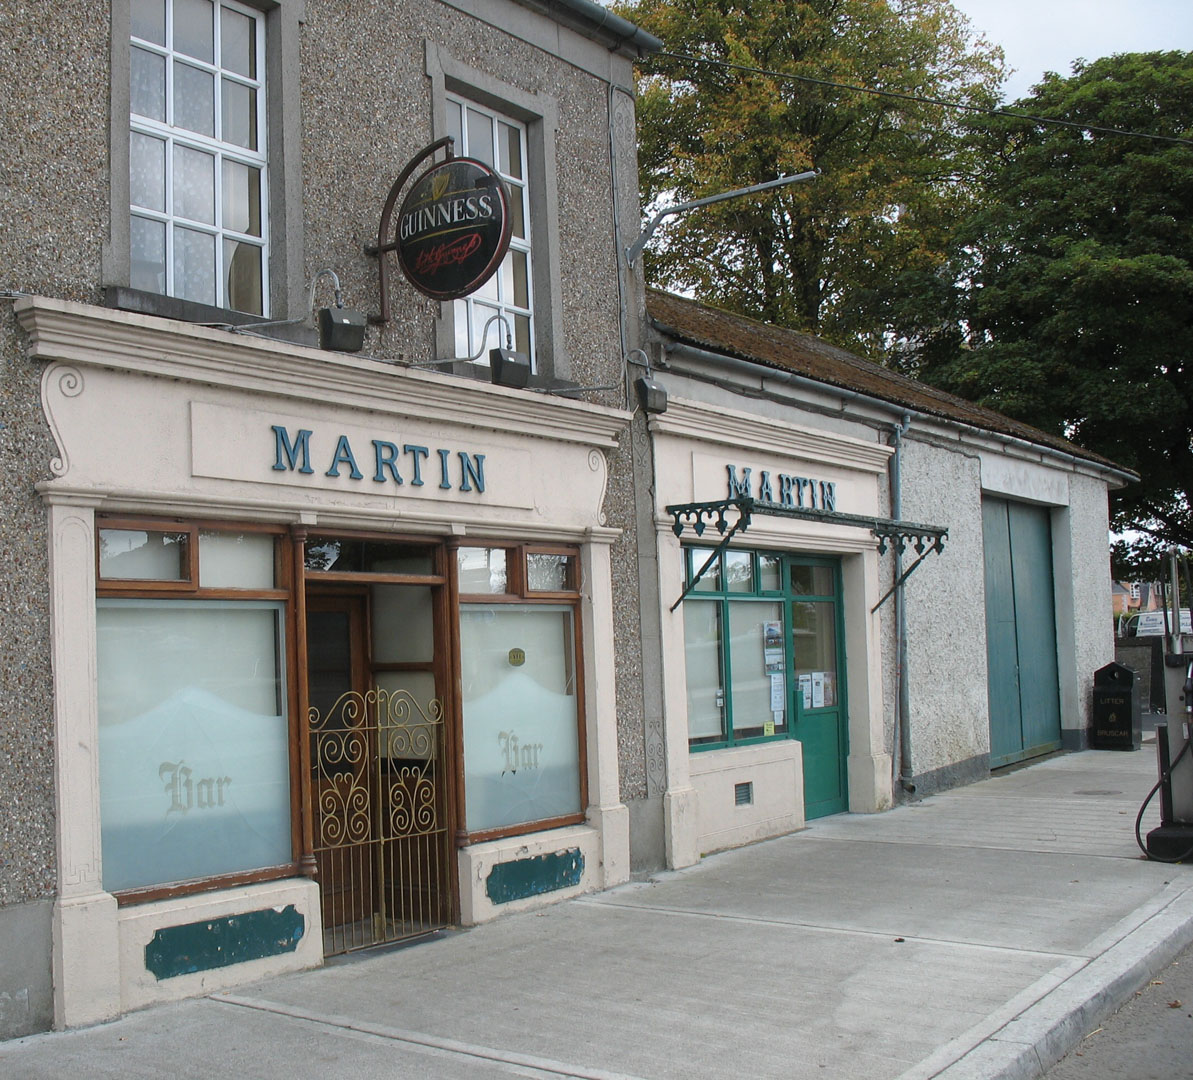 1080 #5F4B38 Billy Martin's 'night Pub' In Portumna With Store And Garage  save image Martin Overhead Doors 36771193